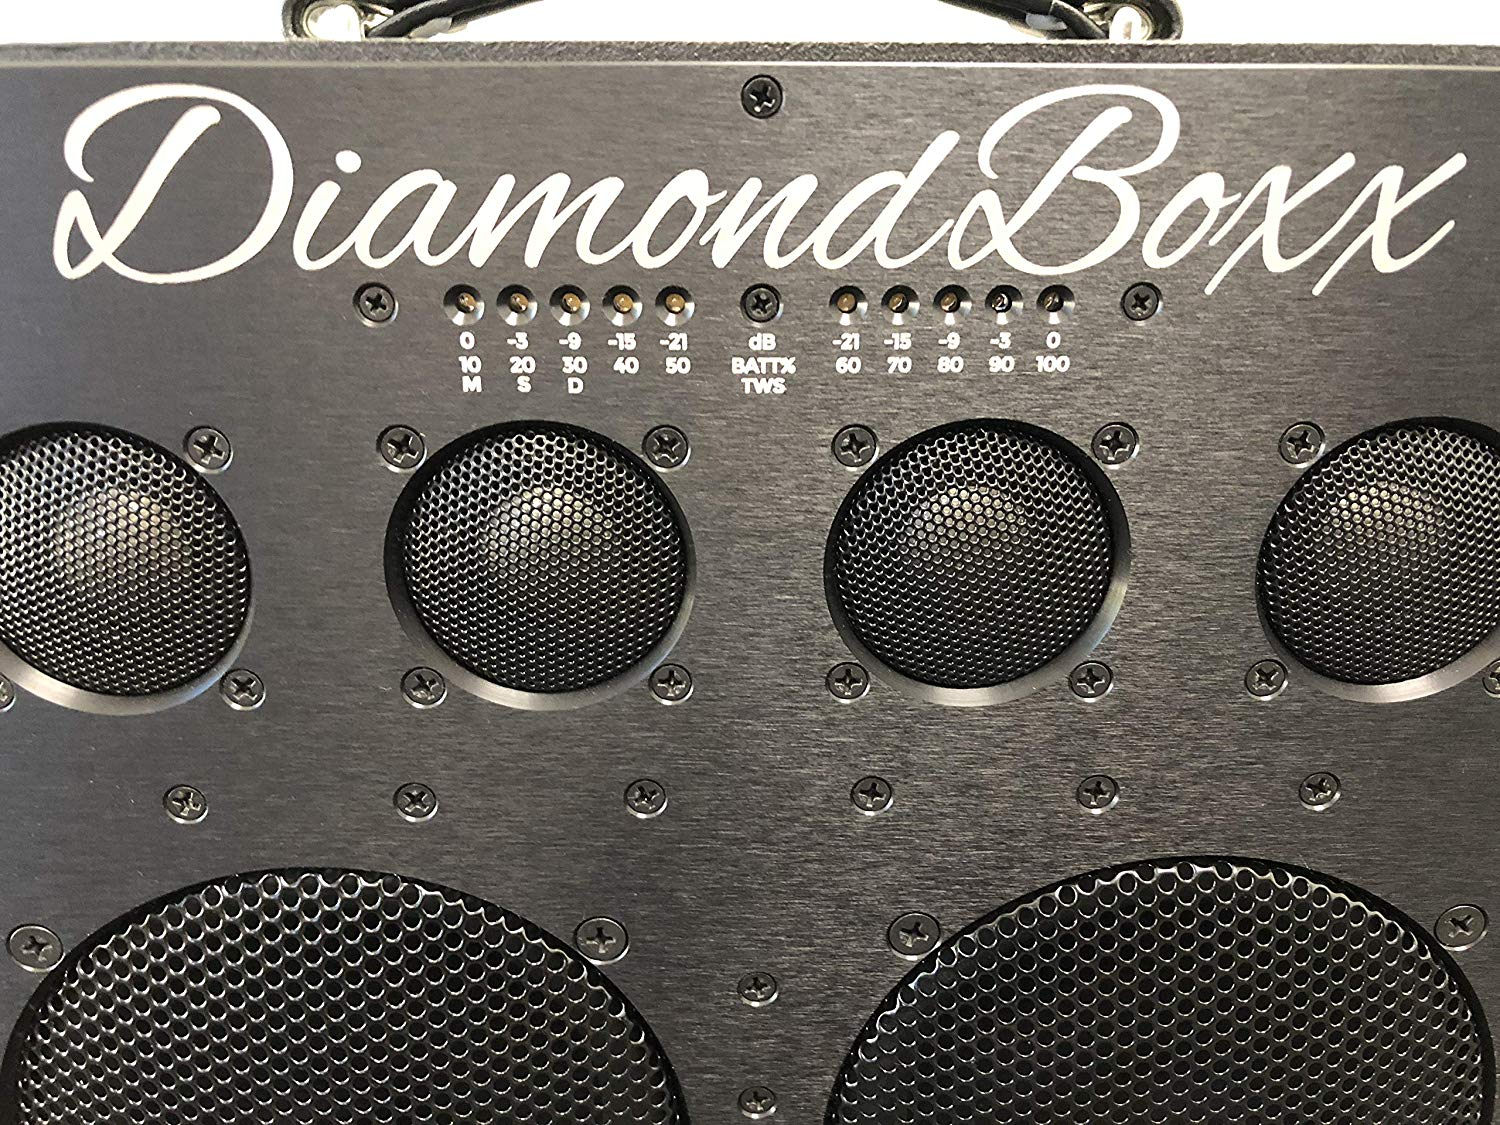 DiamondBoxx XL2 Speaker